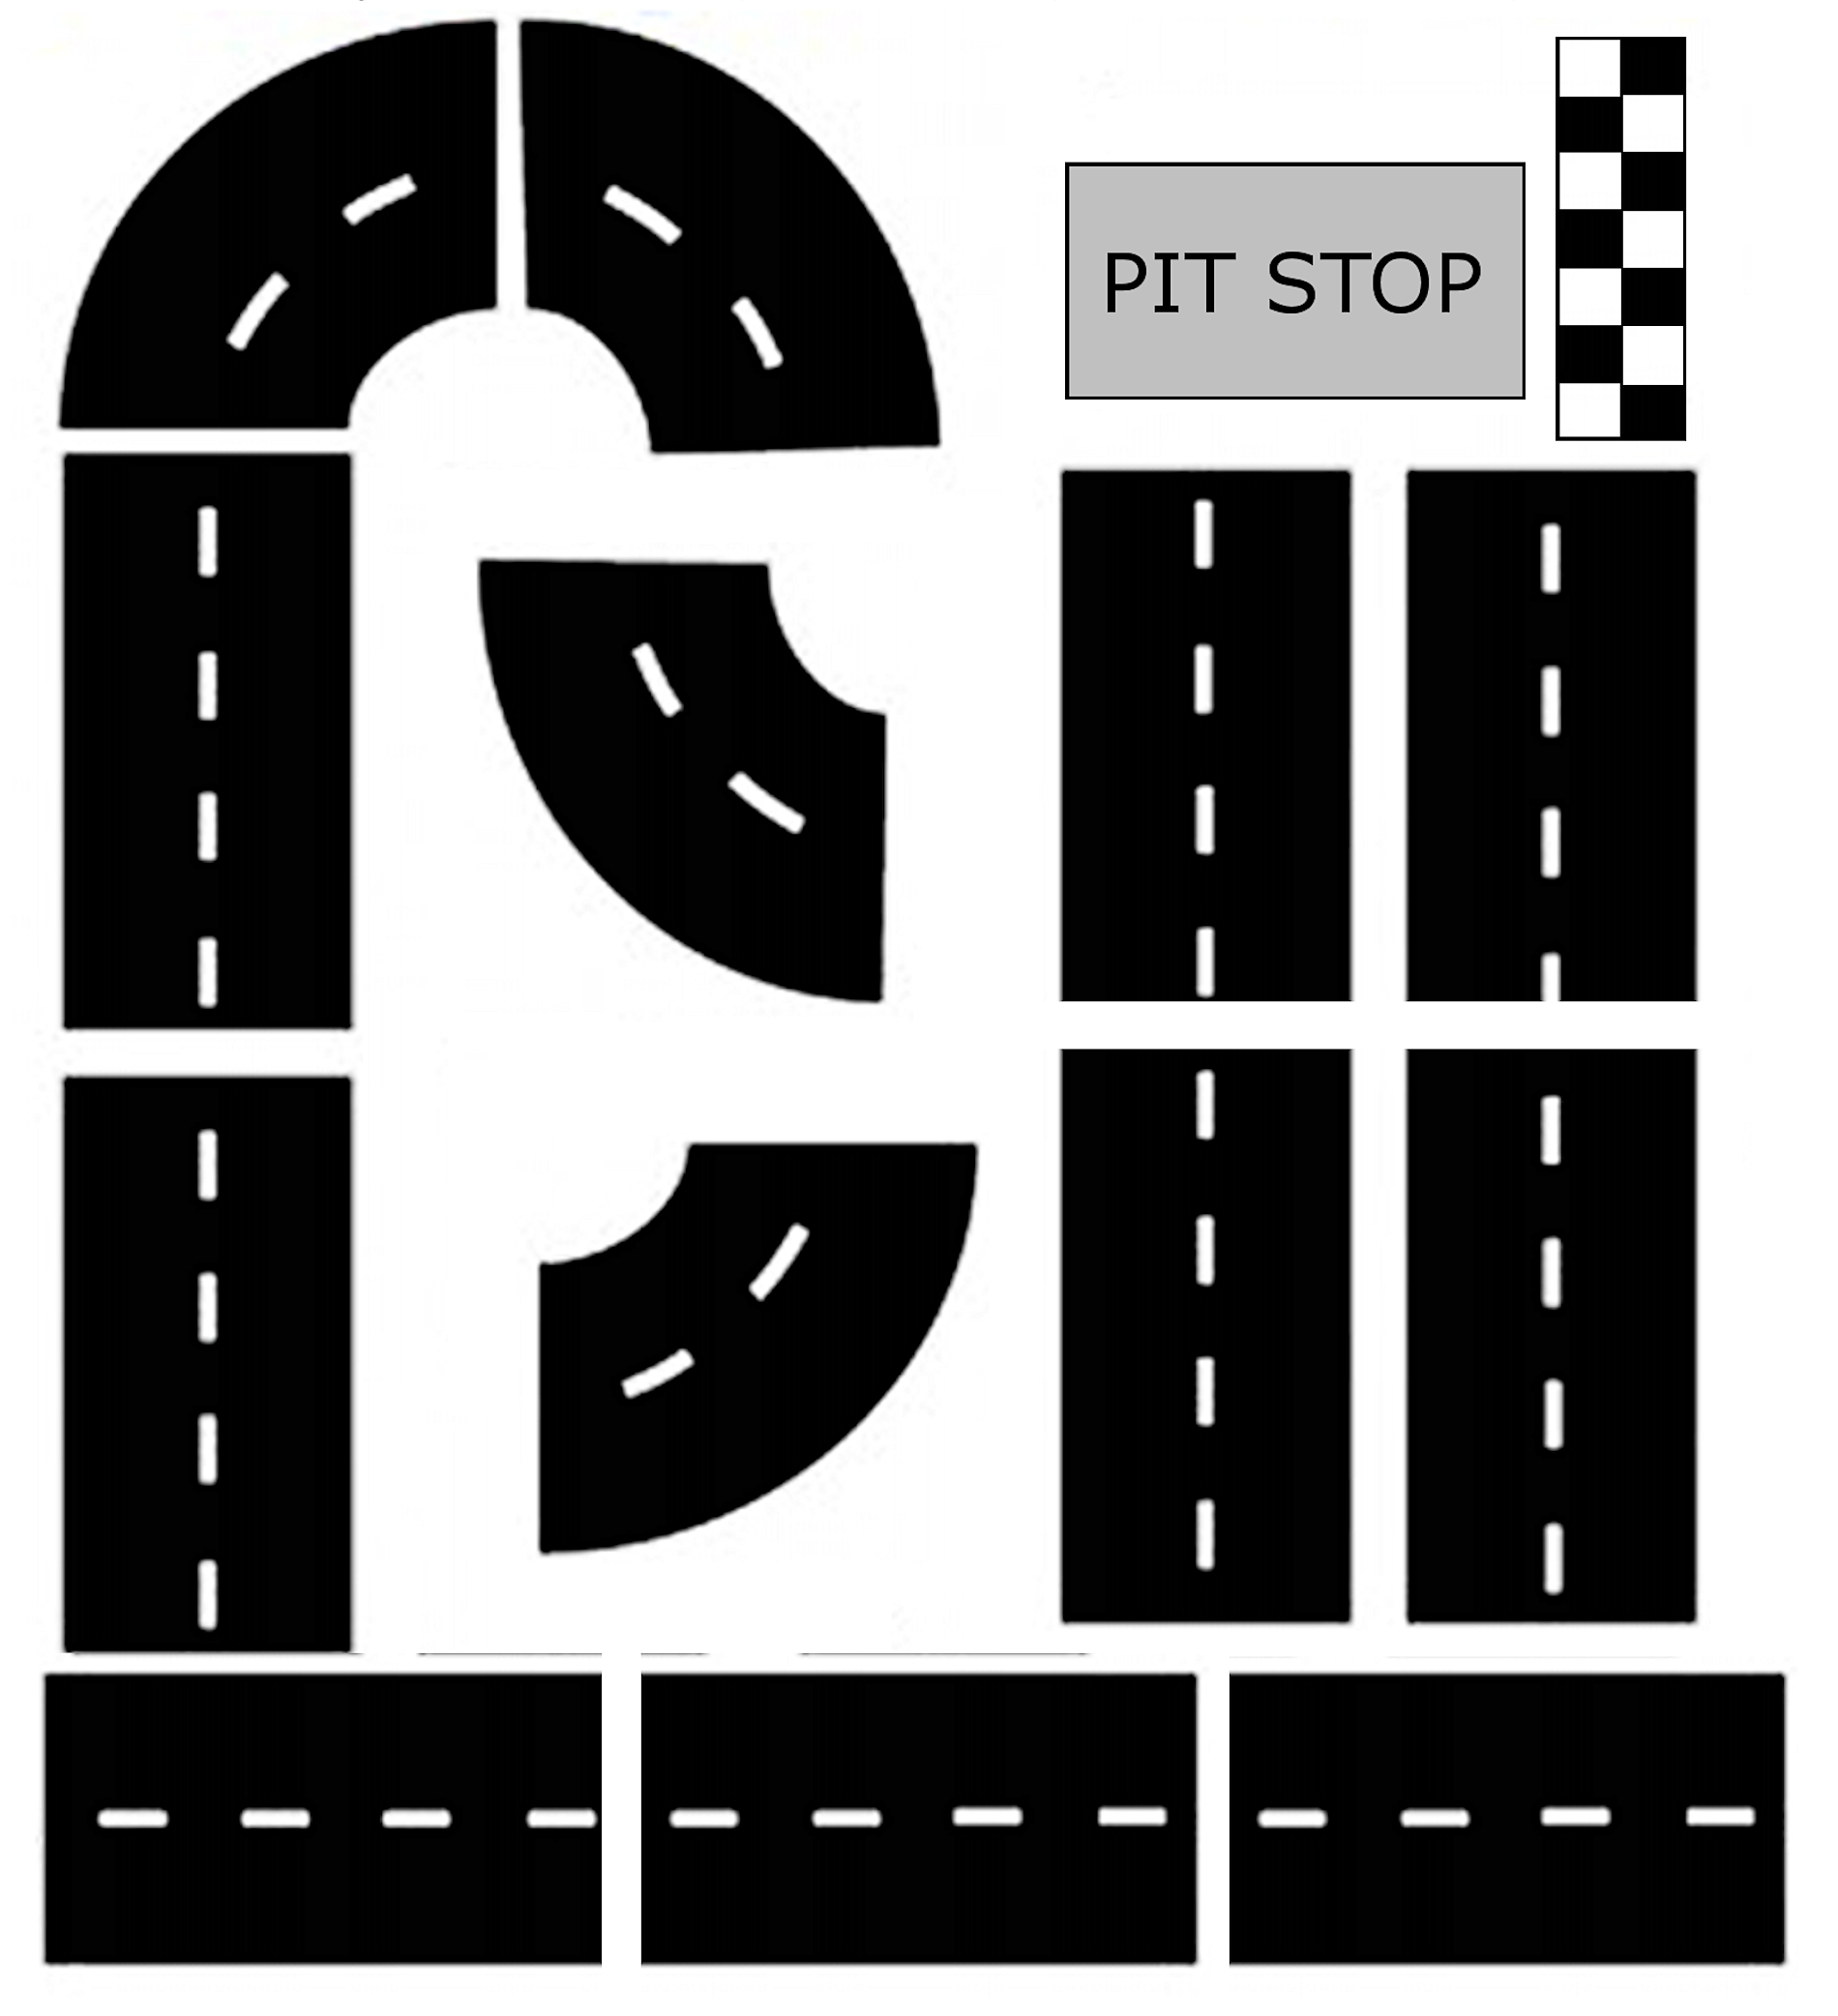 Free Printable Race Track Game Our Kid Things Car Tracks For Kids Race Track Racing